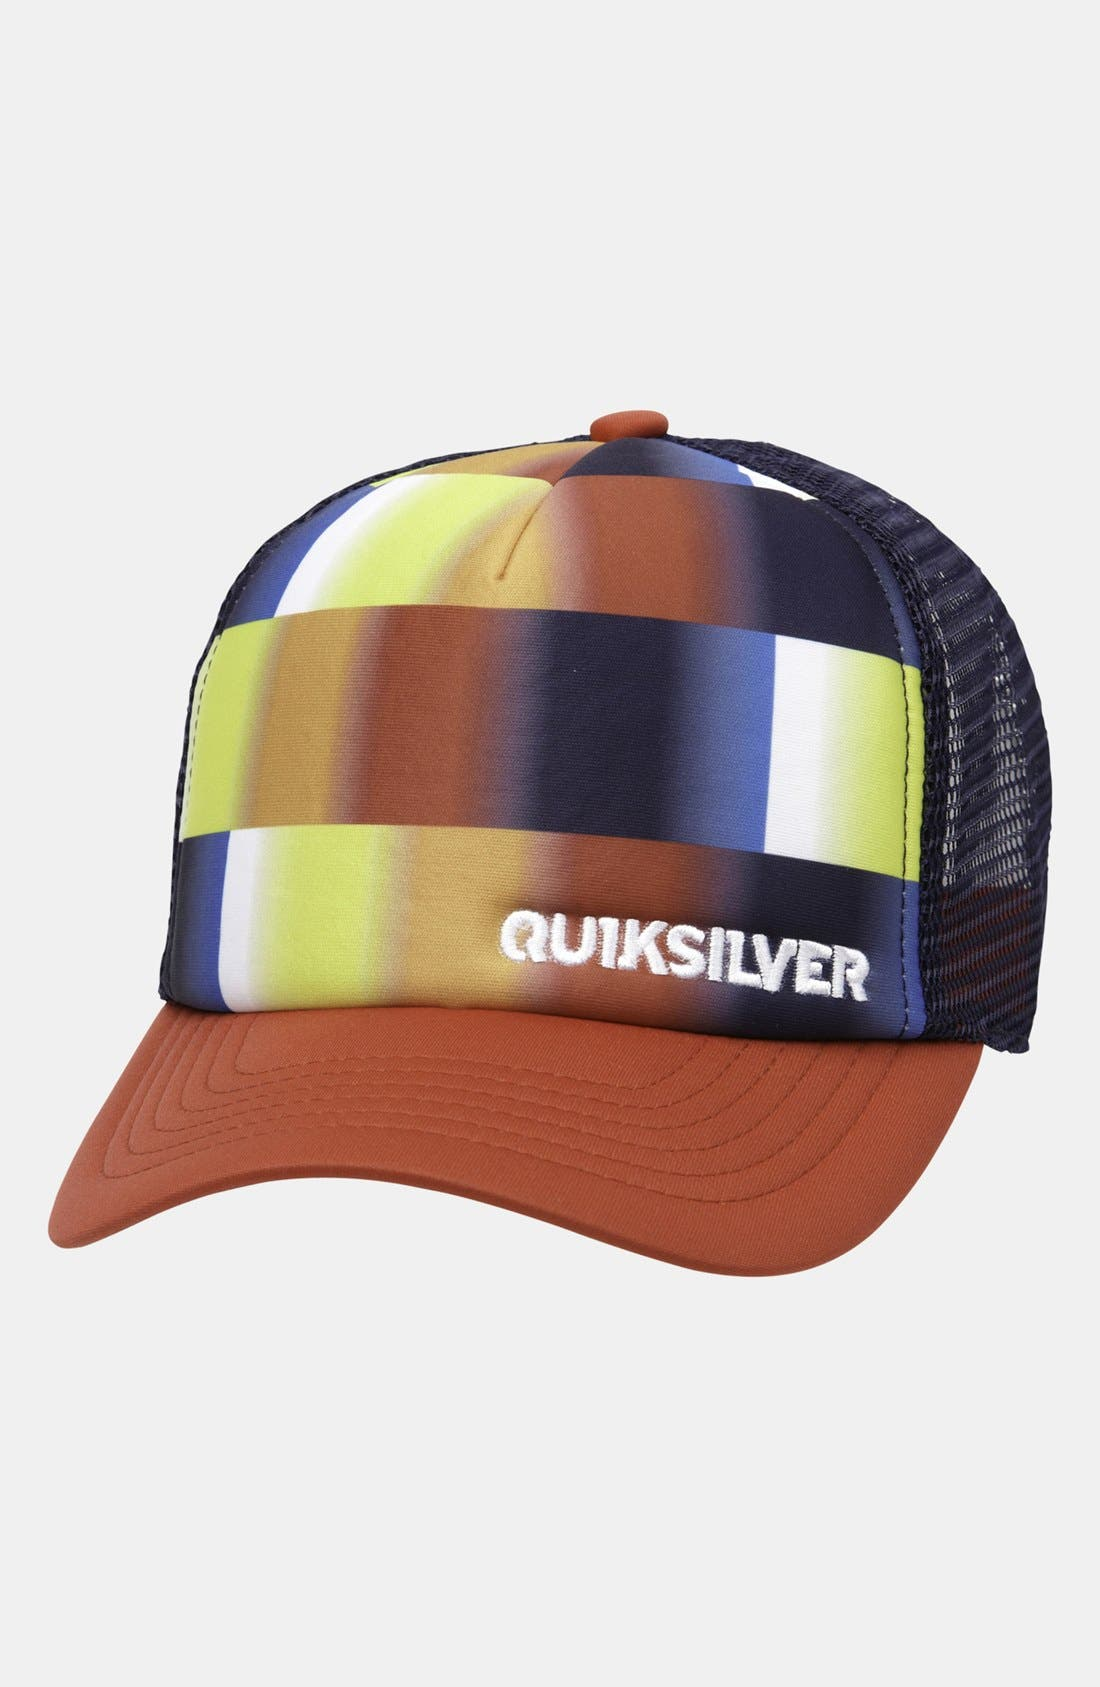 Alternate Image 1 Selected - Quiksilver 'Boards' Hat (Boys)